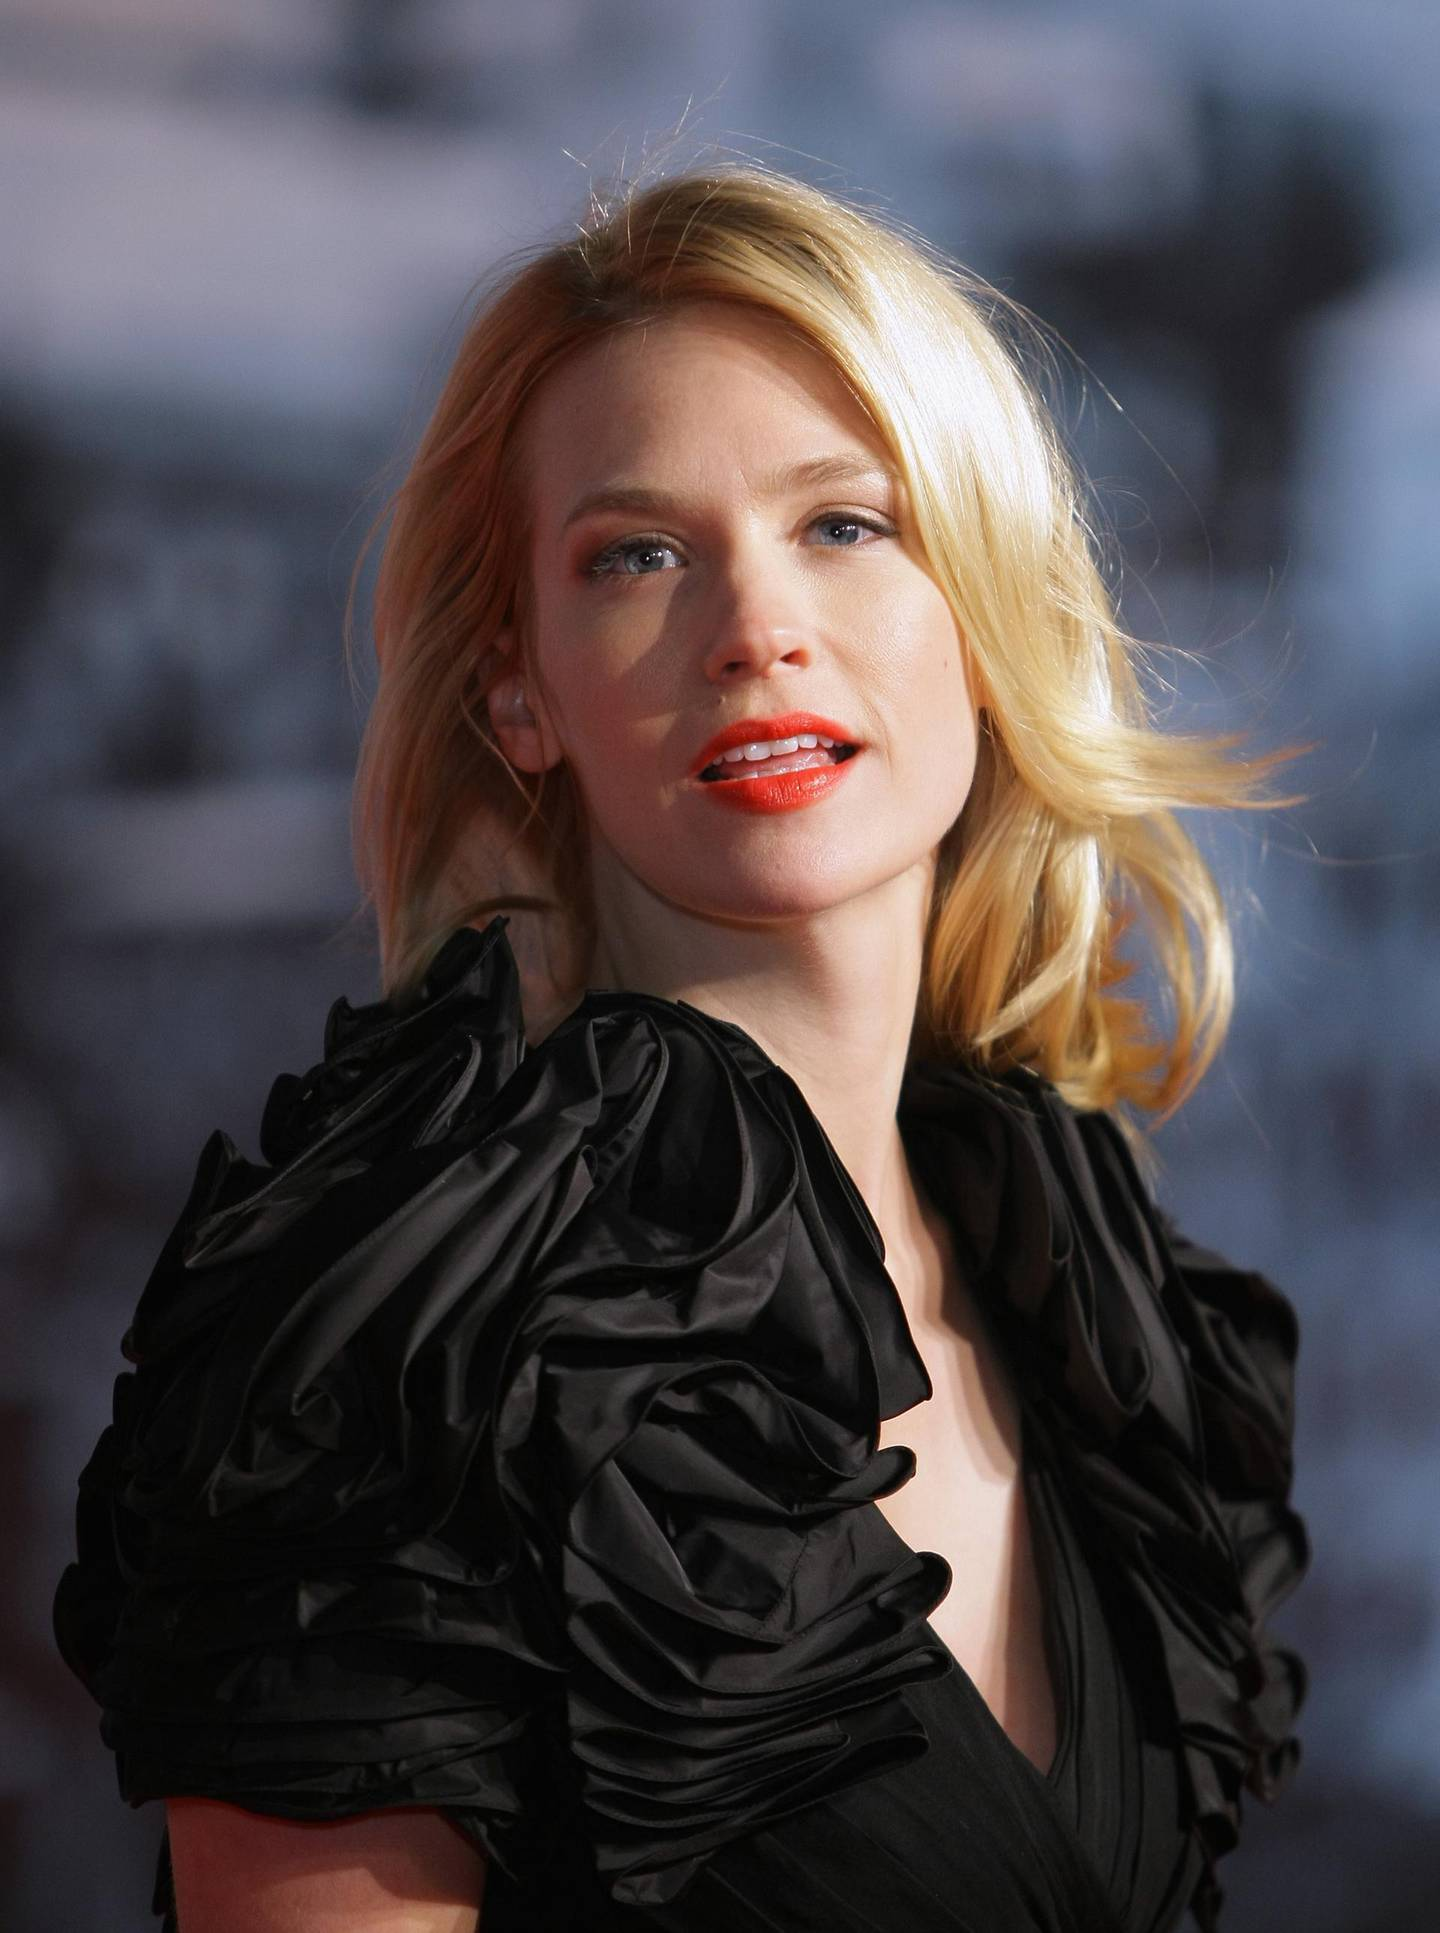 BERLIN - JANUARY 12:  Actress January Jones attends the 'Sherlock Holmes' German Premiere at CineStar on January 12, 2010 in Berlin, Germany.  (Photo by Andreas Rentz/Getty Images)